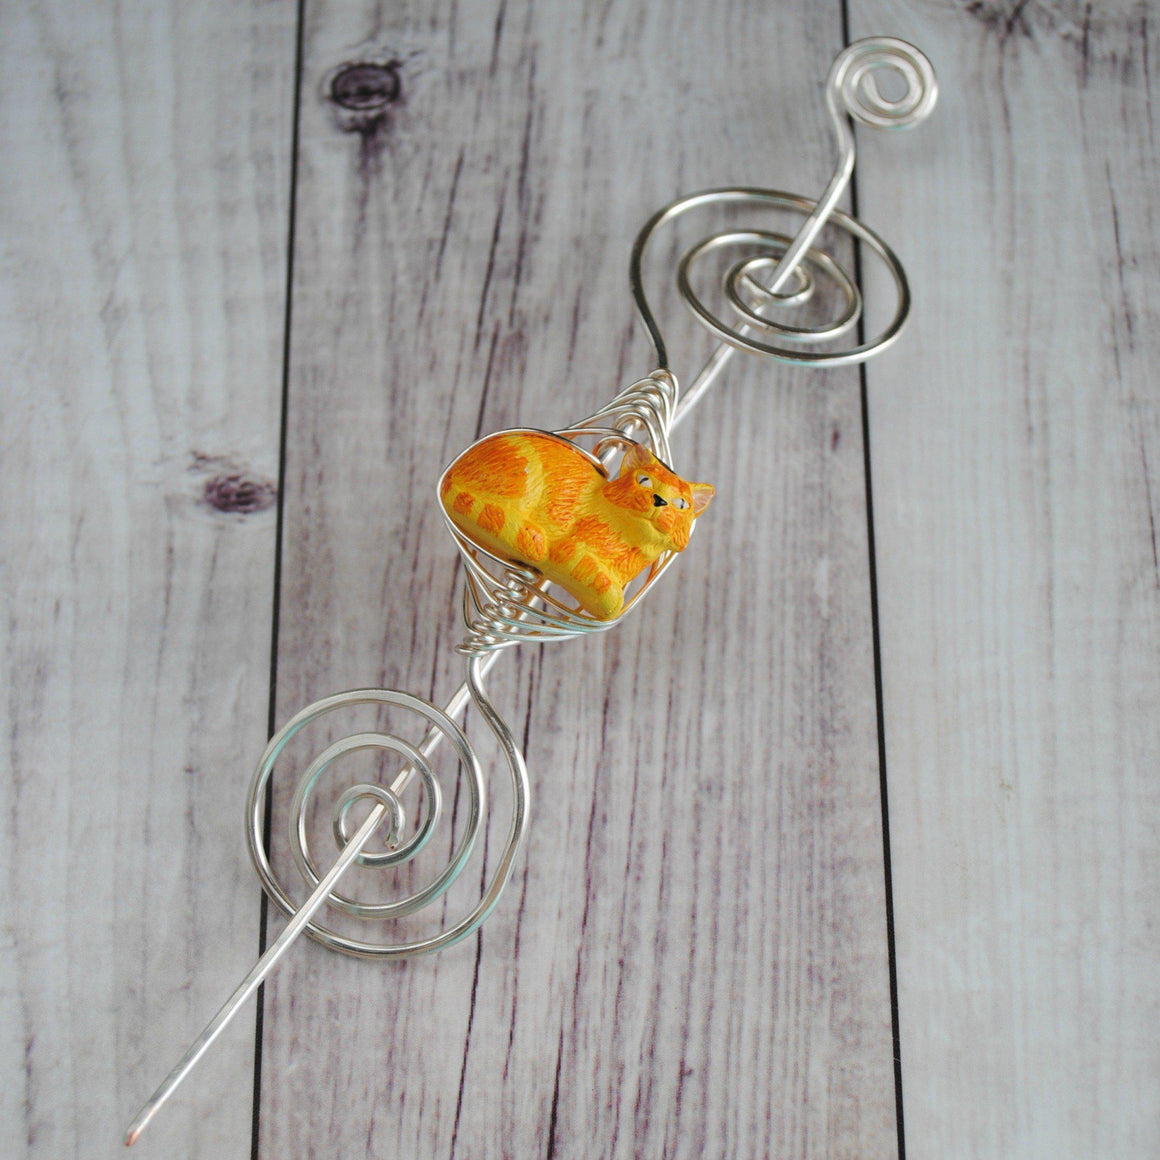 Shawl Pin, Orange Tabby Cat Shawl Pin - Large Silver - Limited Edition - Crafty Flutterby Creations